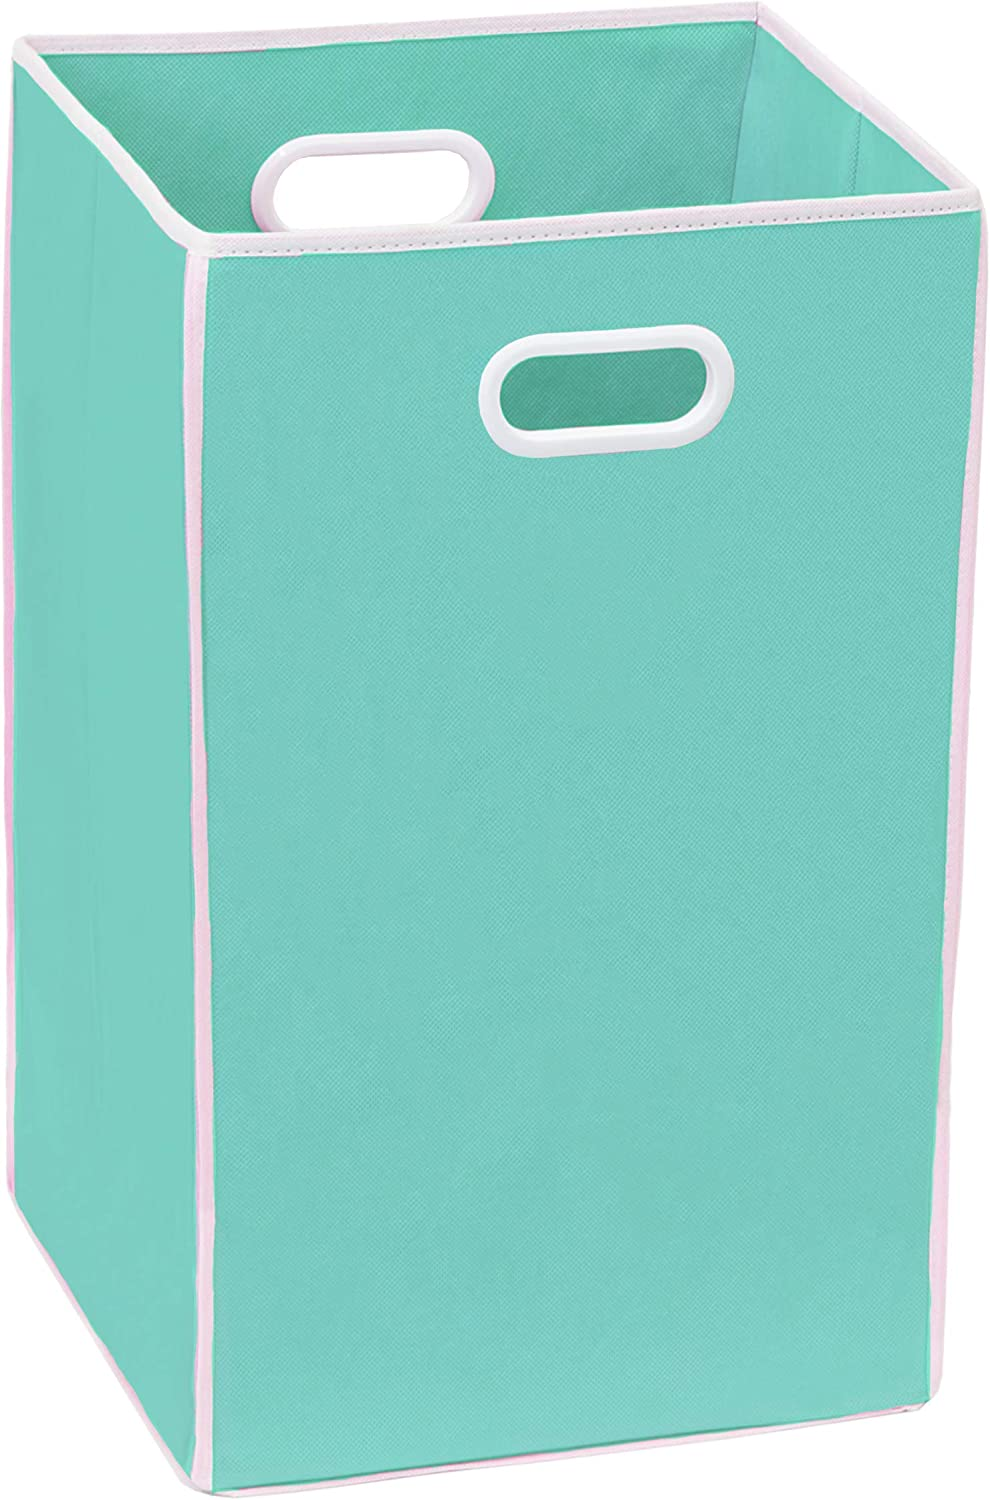 Simple Houseware Foldable Closet Laundry Hamper Basket, Turquoise